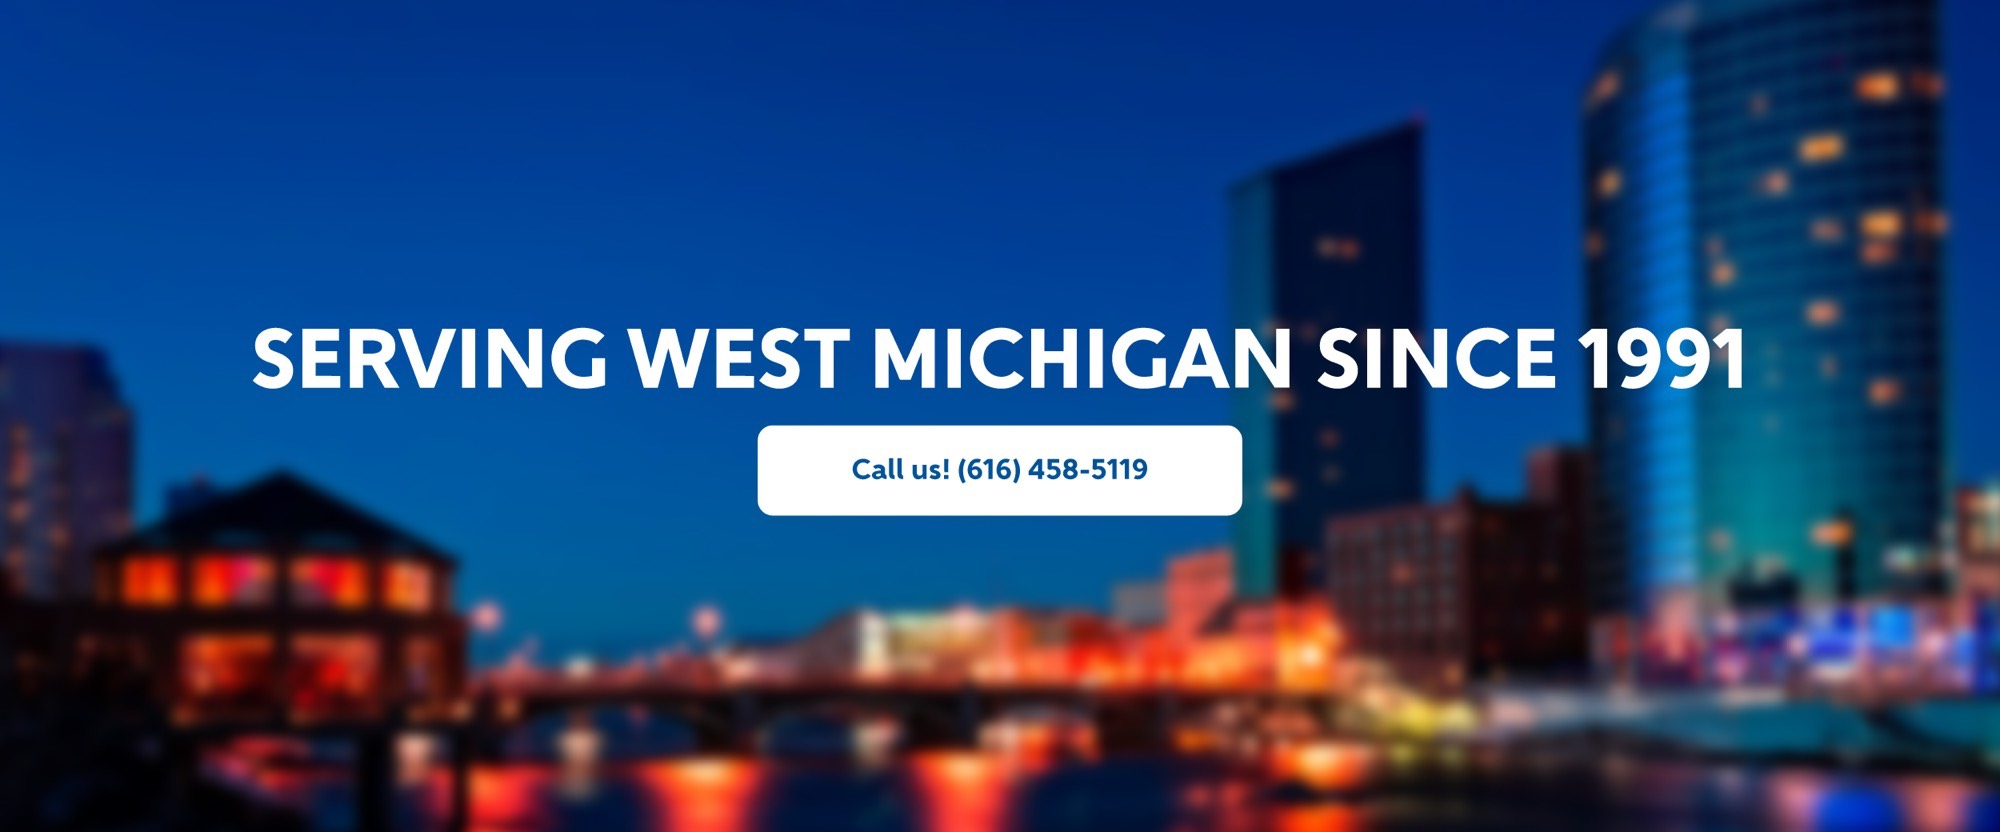 West Michigan Banner